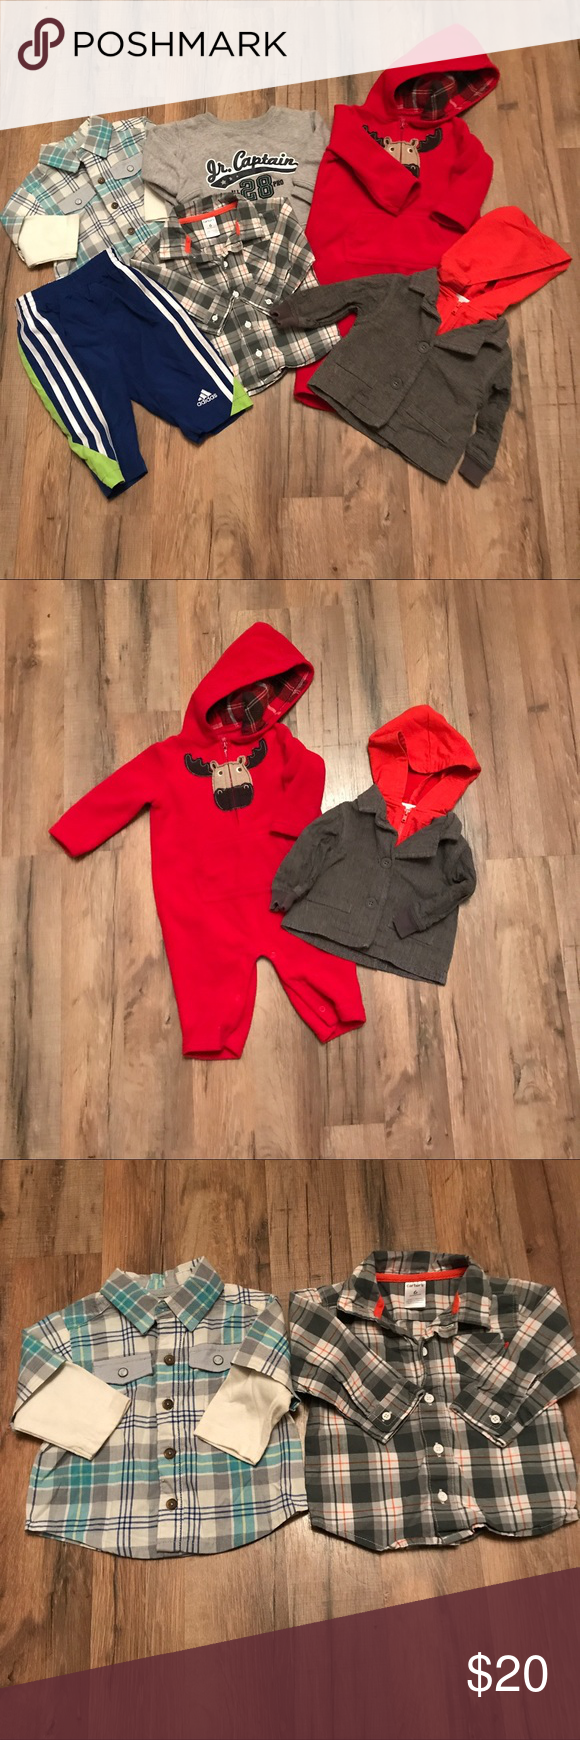 Boys size 6m lot Includes. Carter's button up. Genuinebaby button up. Carter's sweatshirt. Adidas pants. Little maven jacket. Carter's outfit. Carter's One Pieces